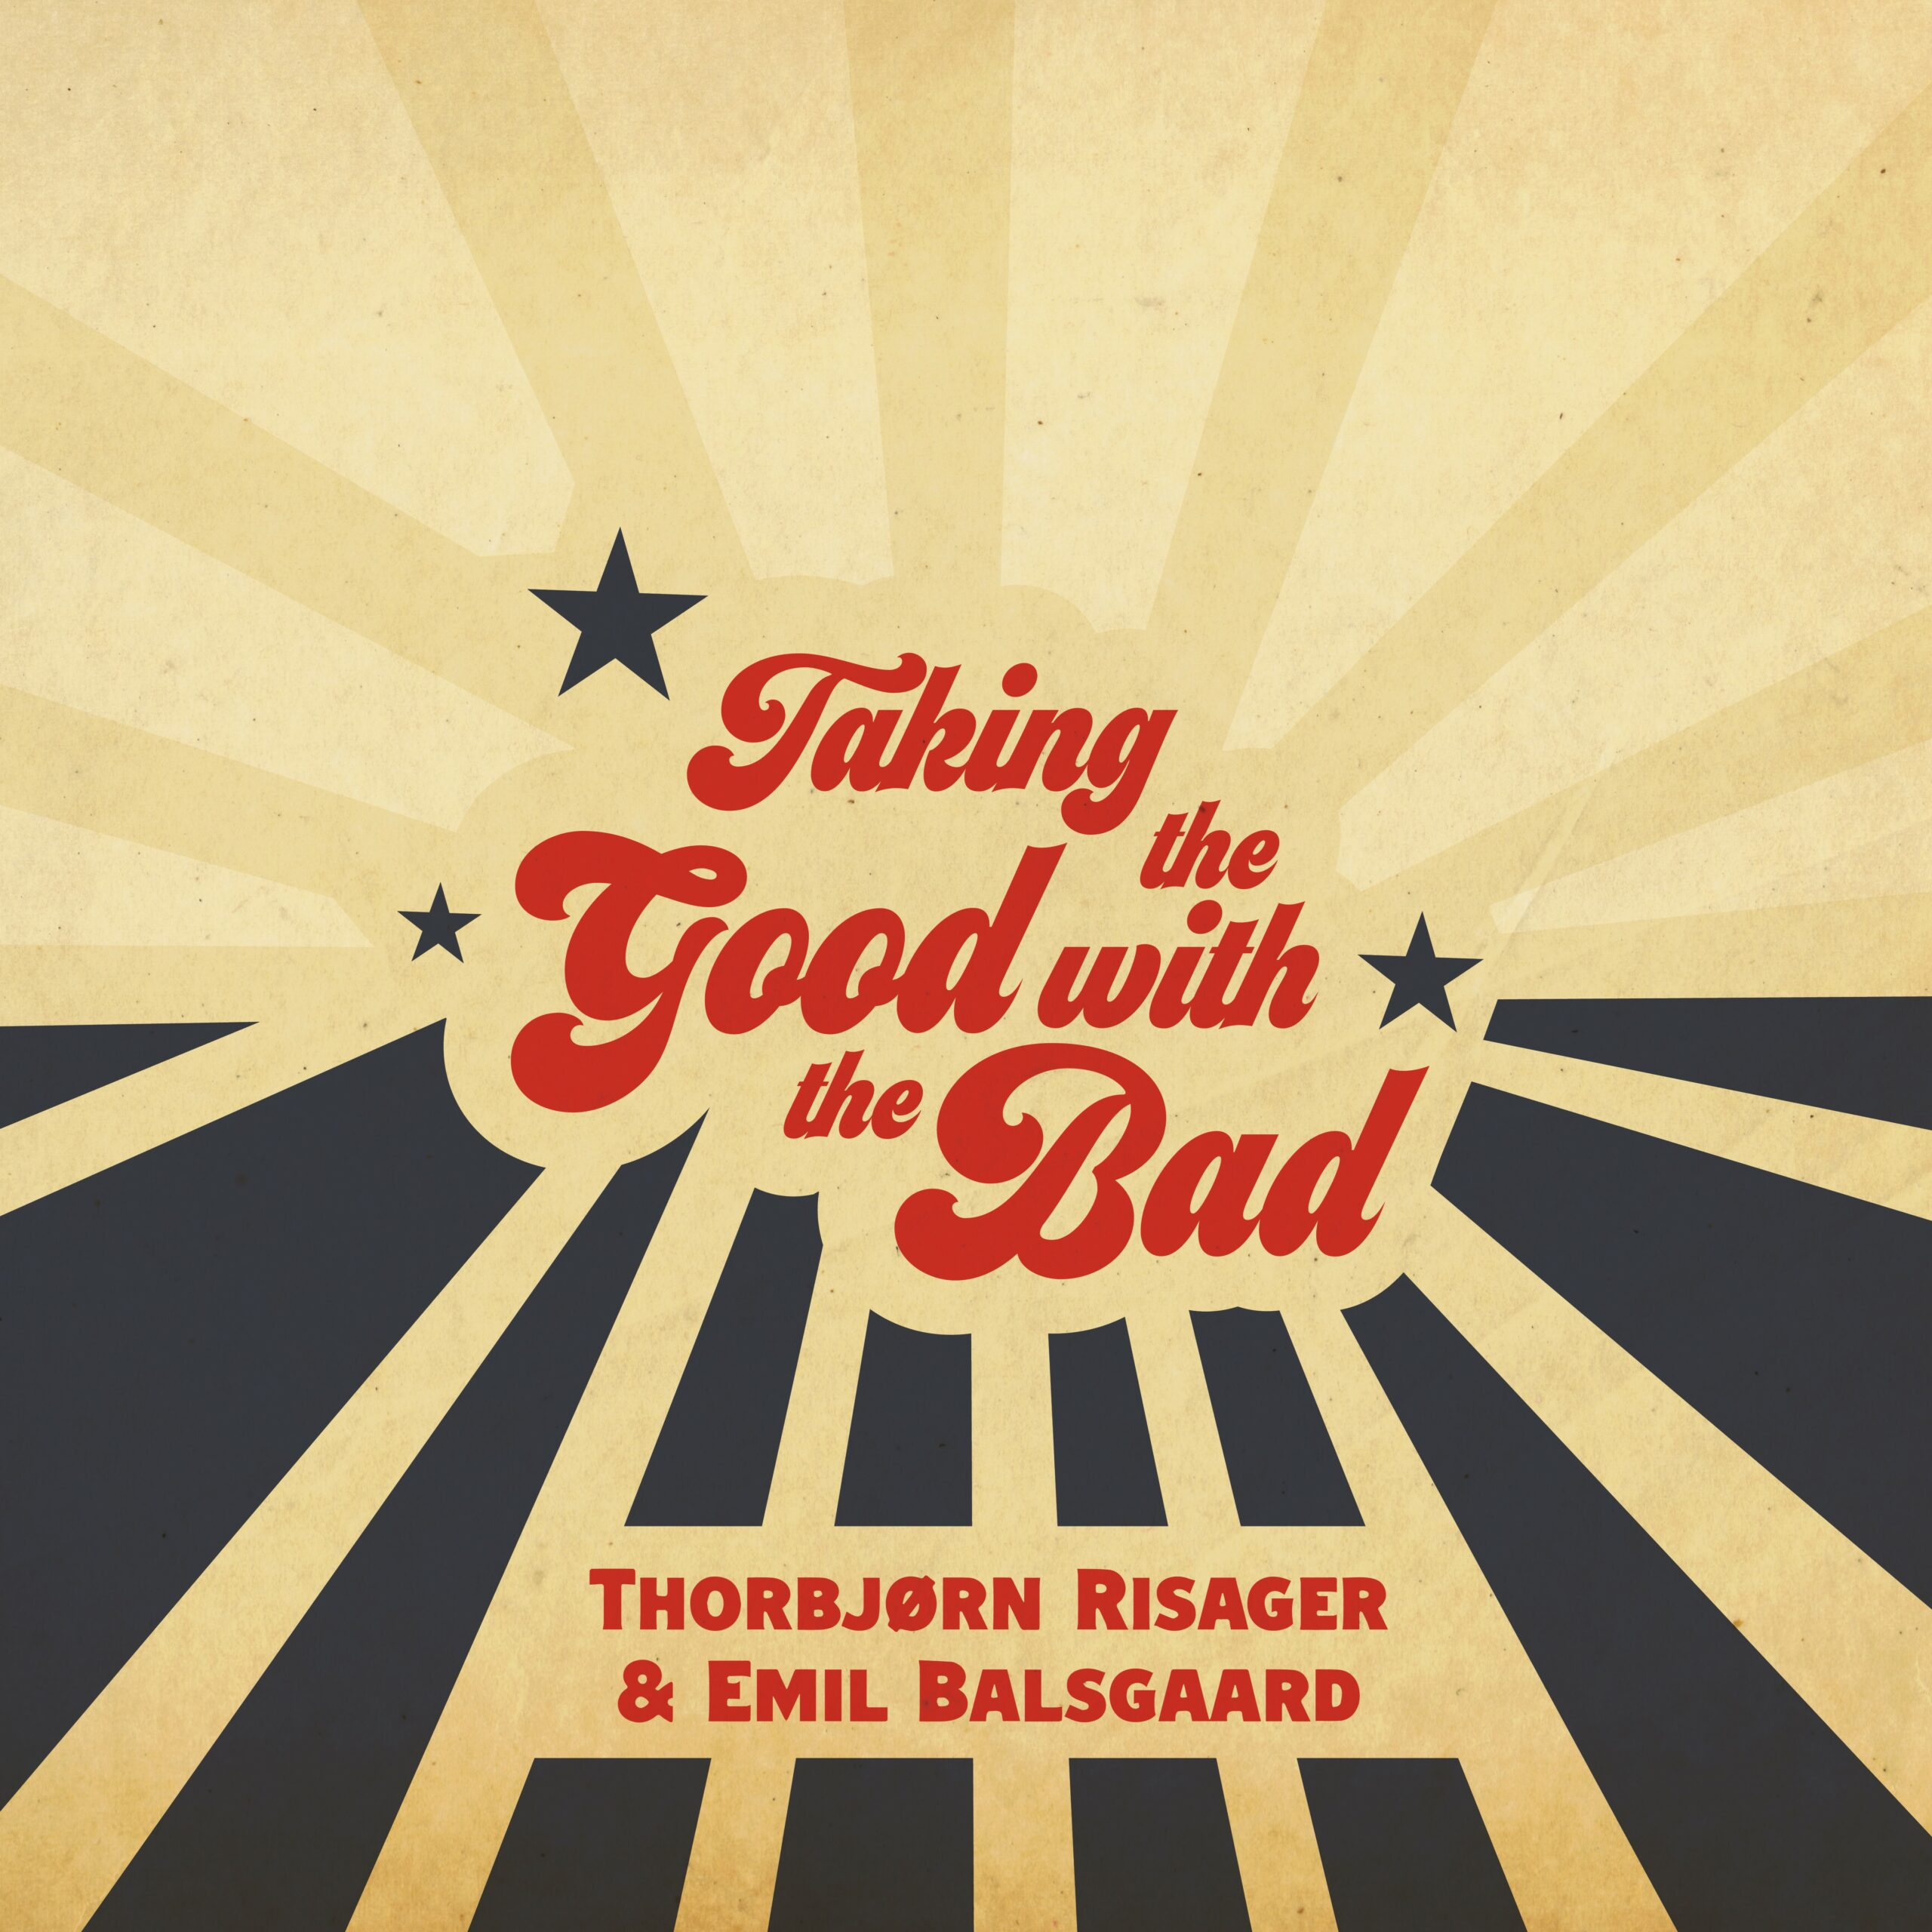 Thorbjorn Risager & Emil Balsgaard - Taking the Good with the Bad (2021)